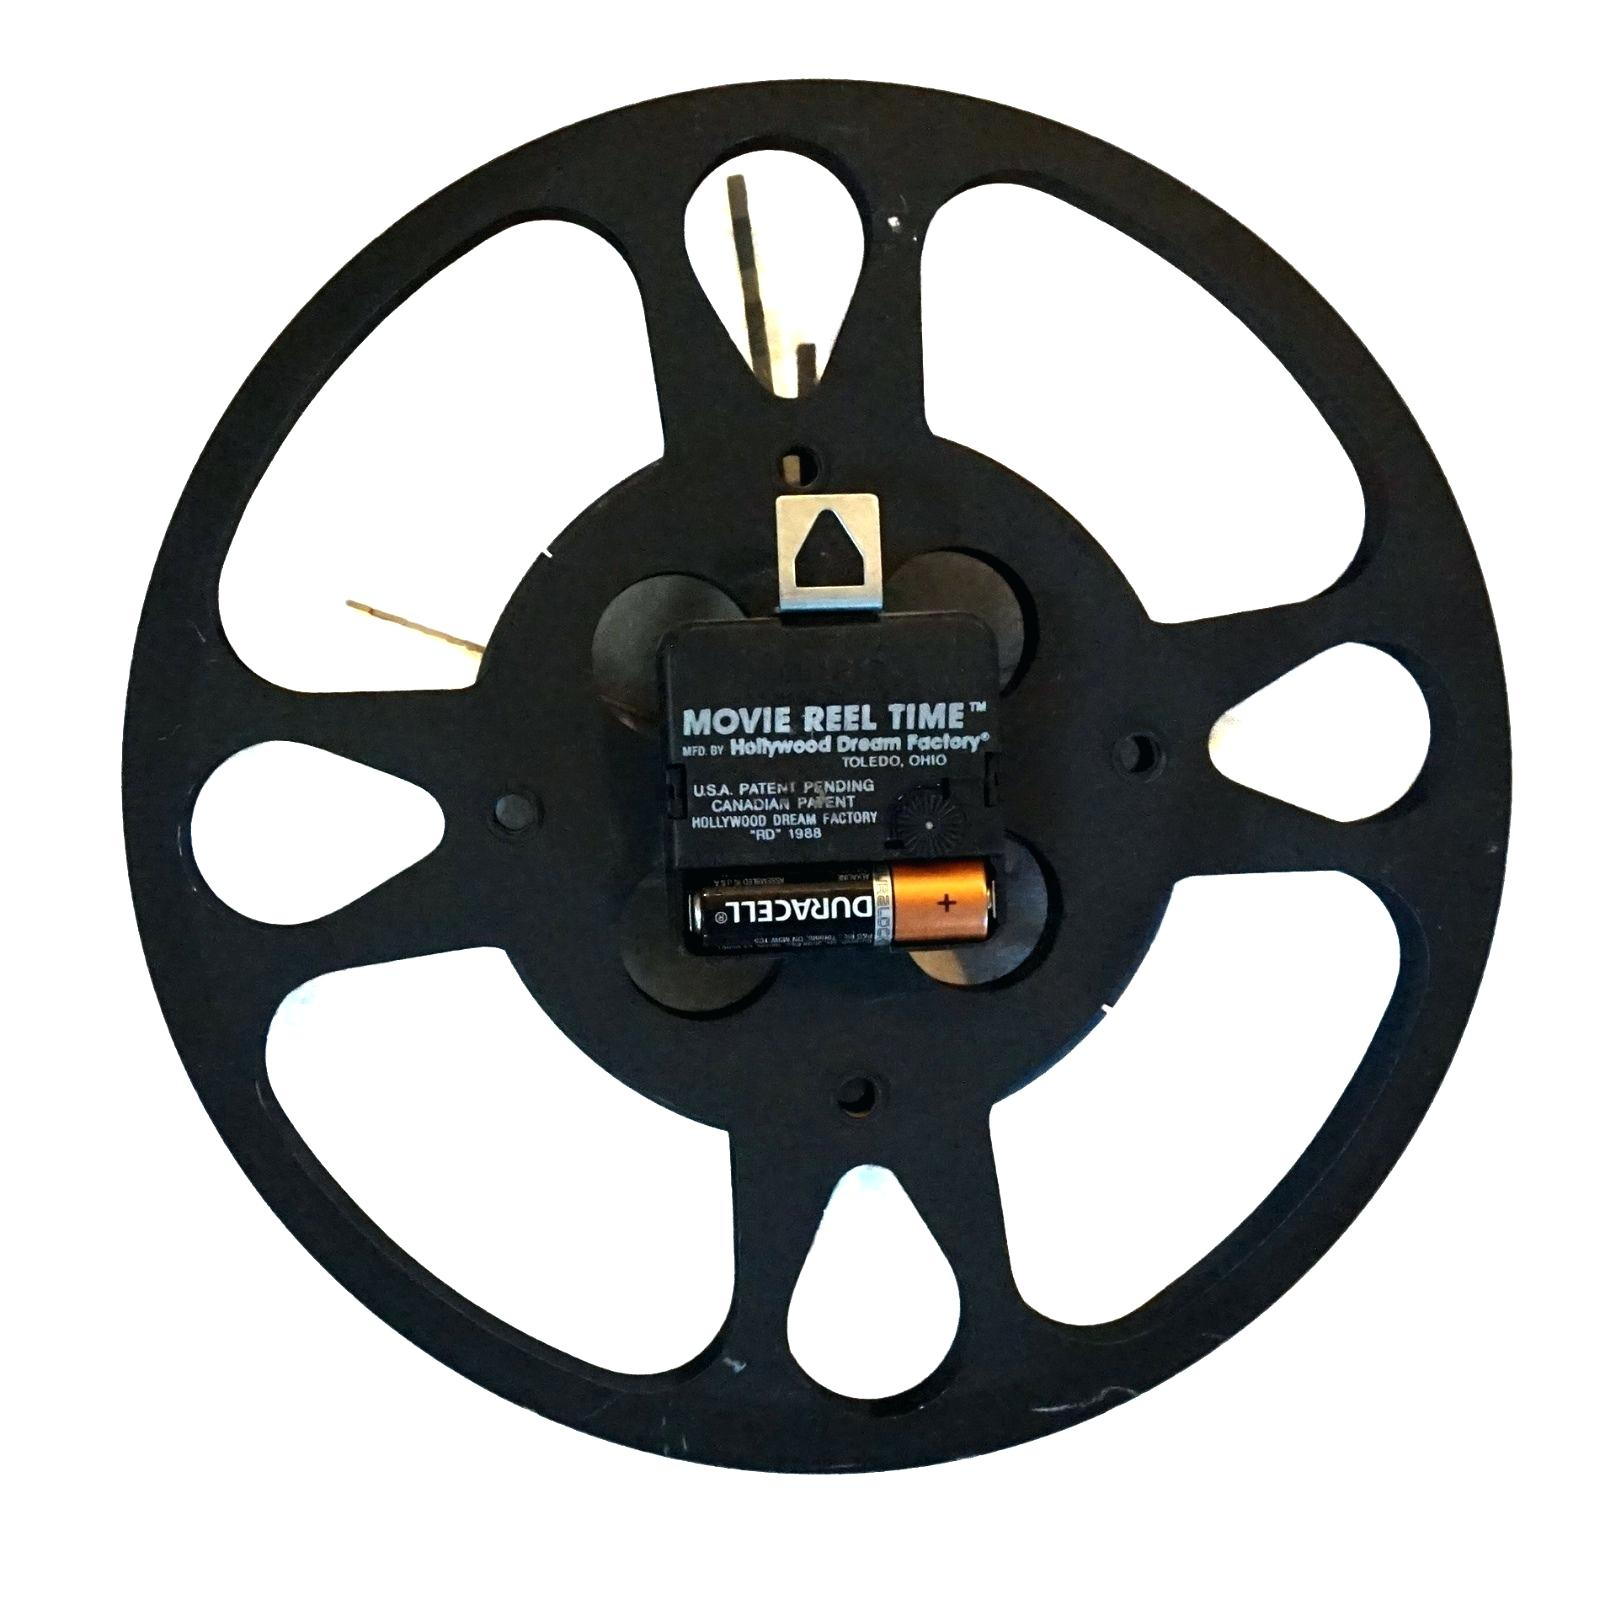 1600x1600 Wall Decor Cozy Movie Reel Wall Decor Design. Film Reel Wall